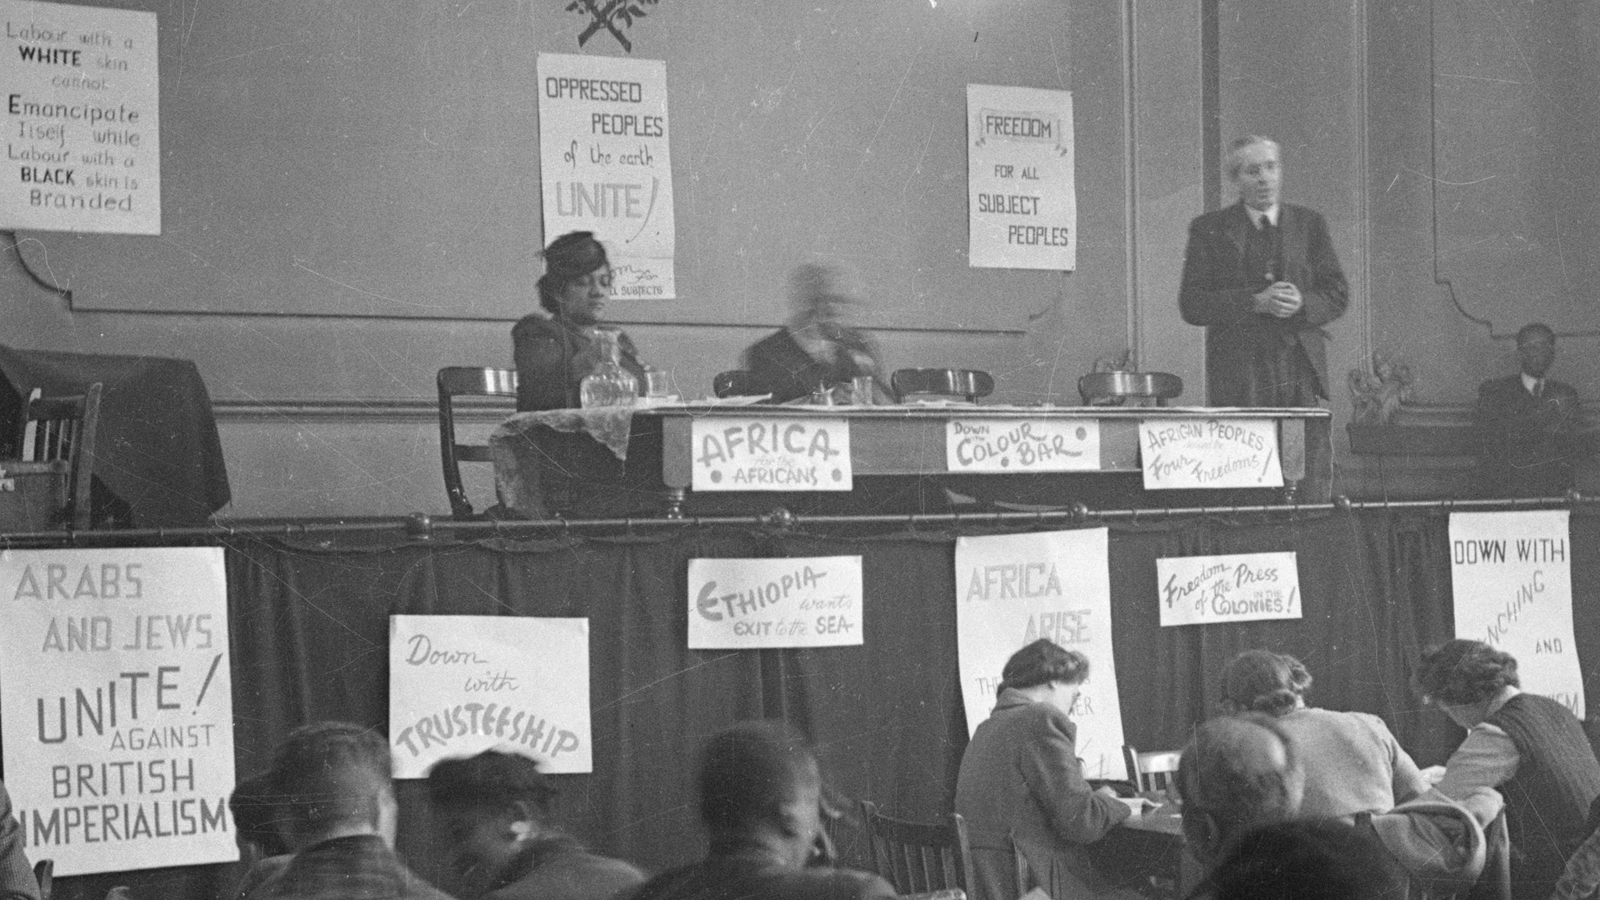 Banner image showing A A Garvey at the Fifth Pan African Congress